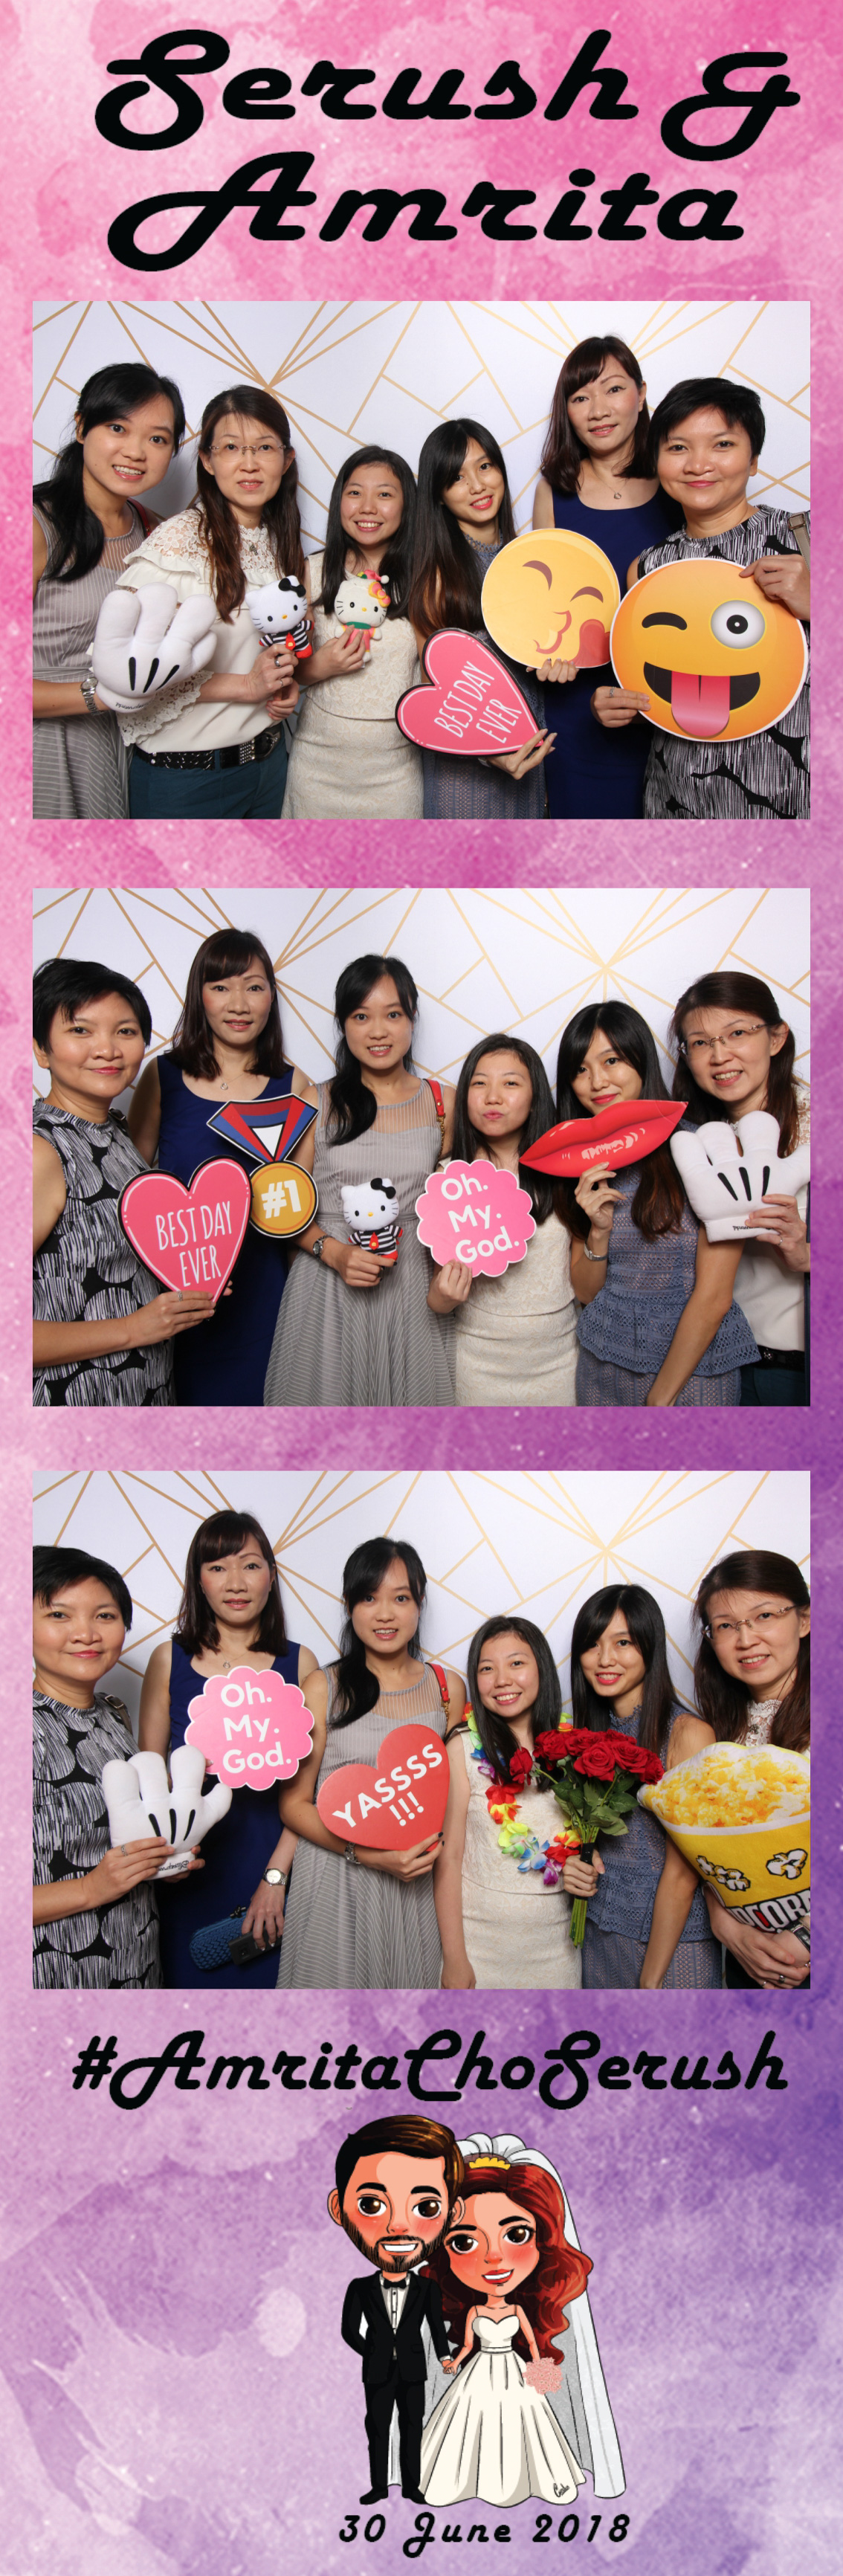 whoots photo booth singapore wedding (7